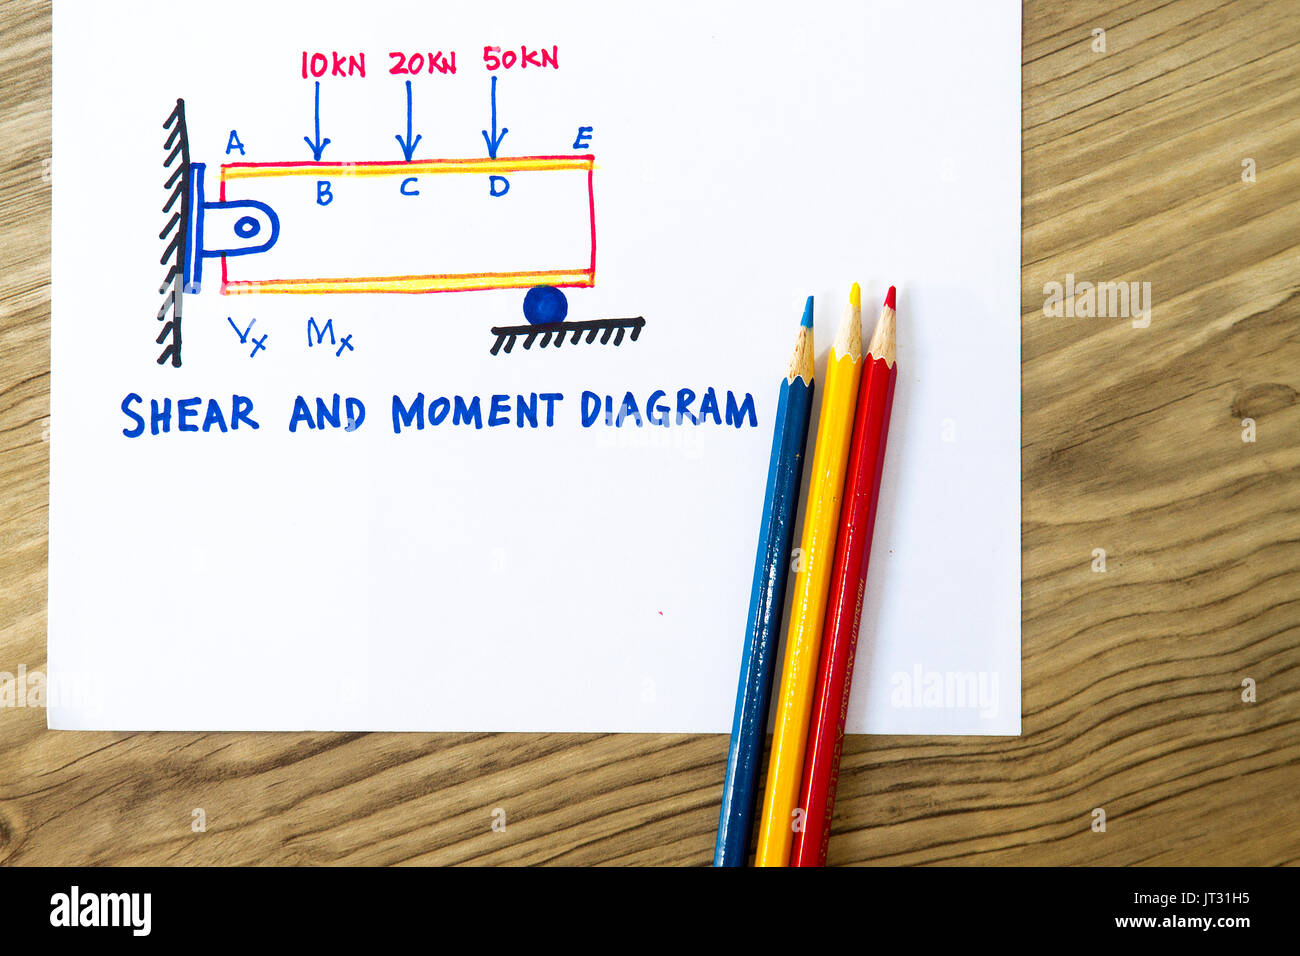 Shear and moment diagram calculation of stress engineering shear and moment diagram calculation of stress engineering formula and sketch pooptronica Gallery